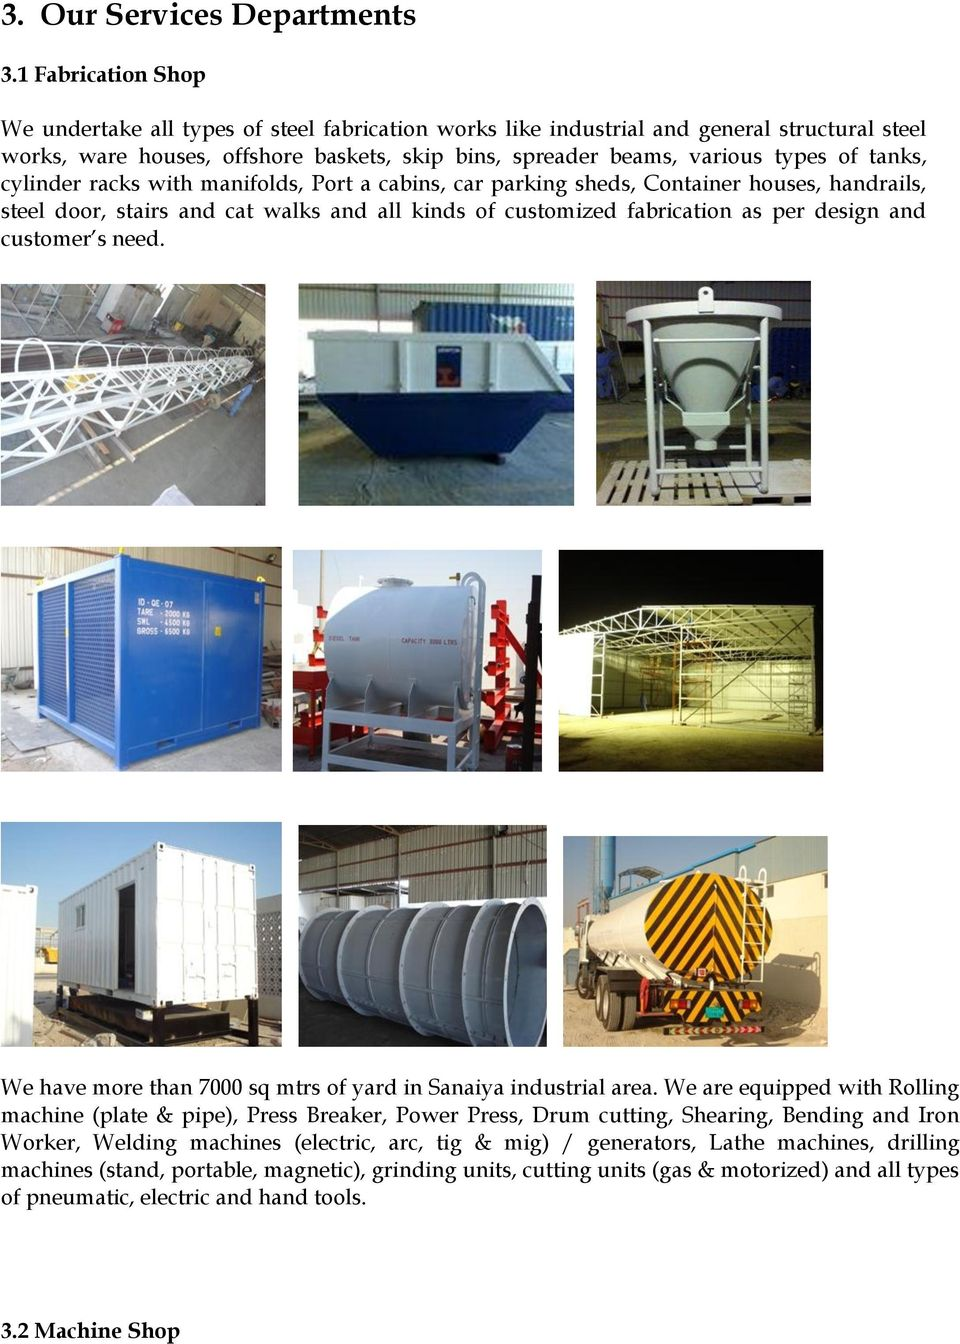 tanks, cylinder racks with manifolds, Port a cabins, car parking sheds, Container houses, handrails, steel door, stairs and cat walks and all kinds of customized fabrication as per design and